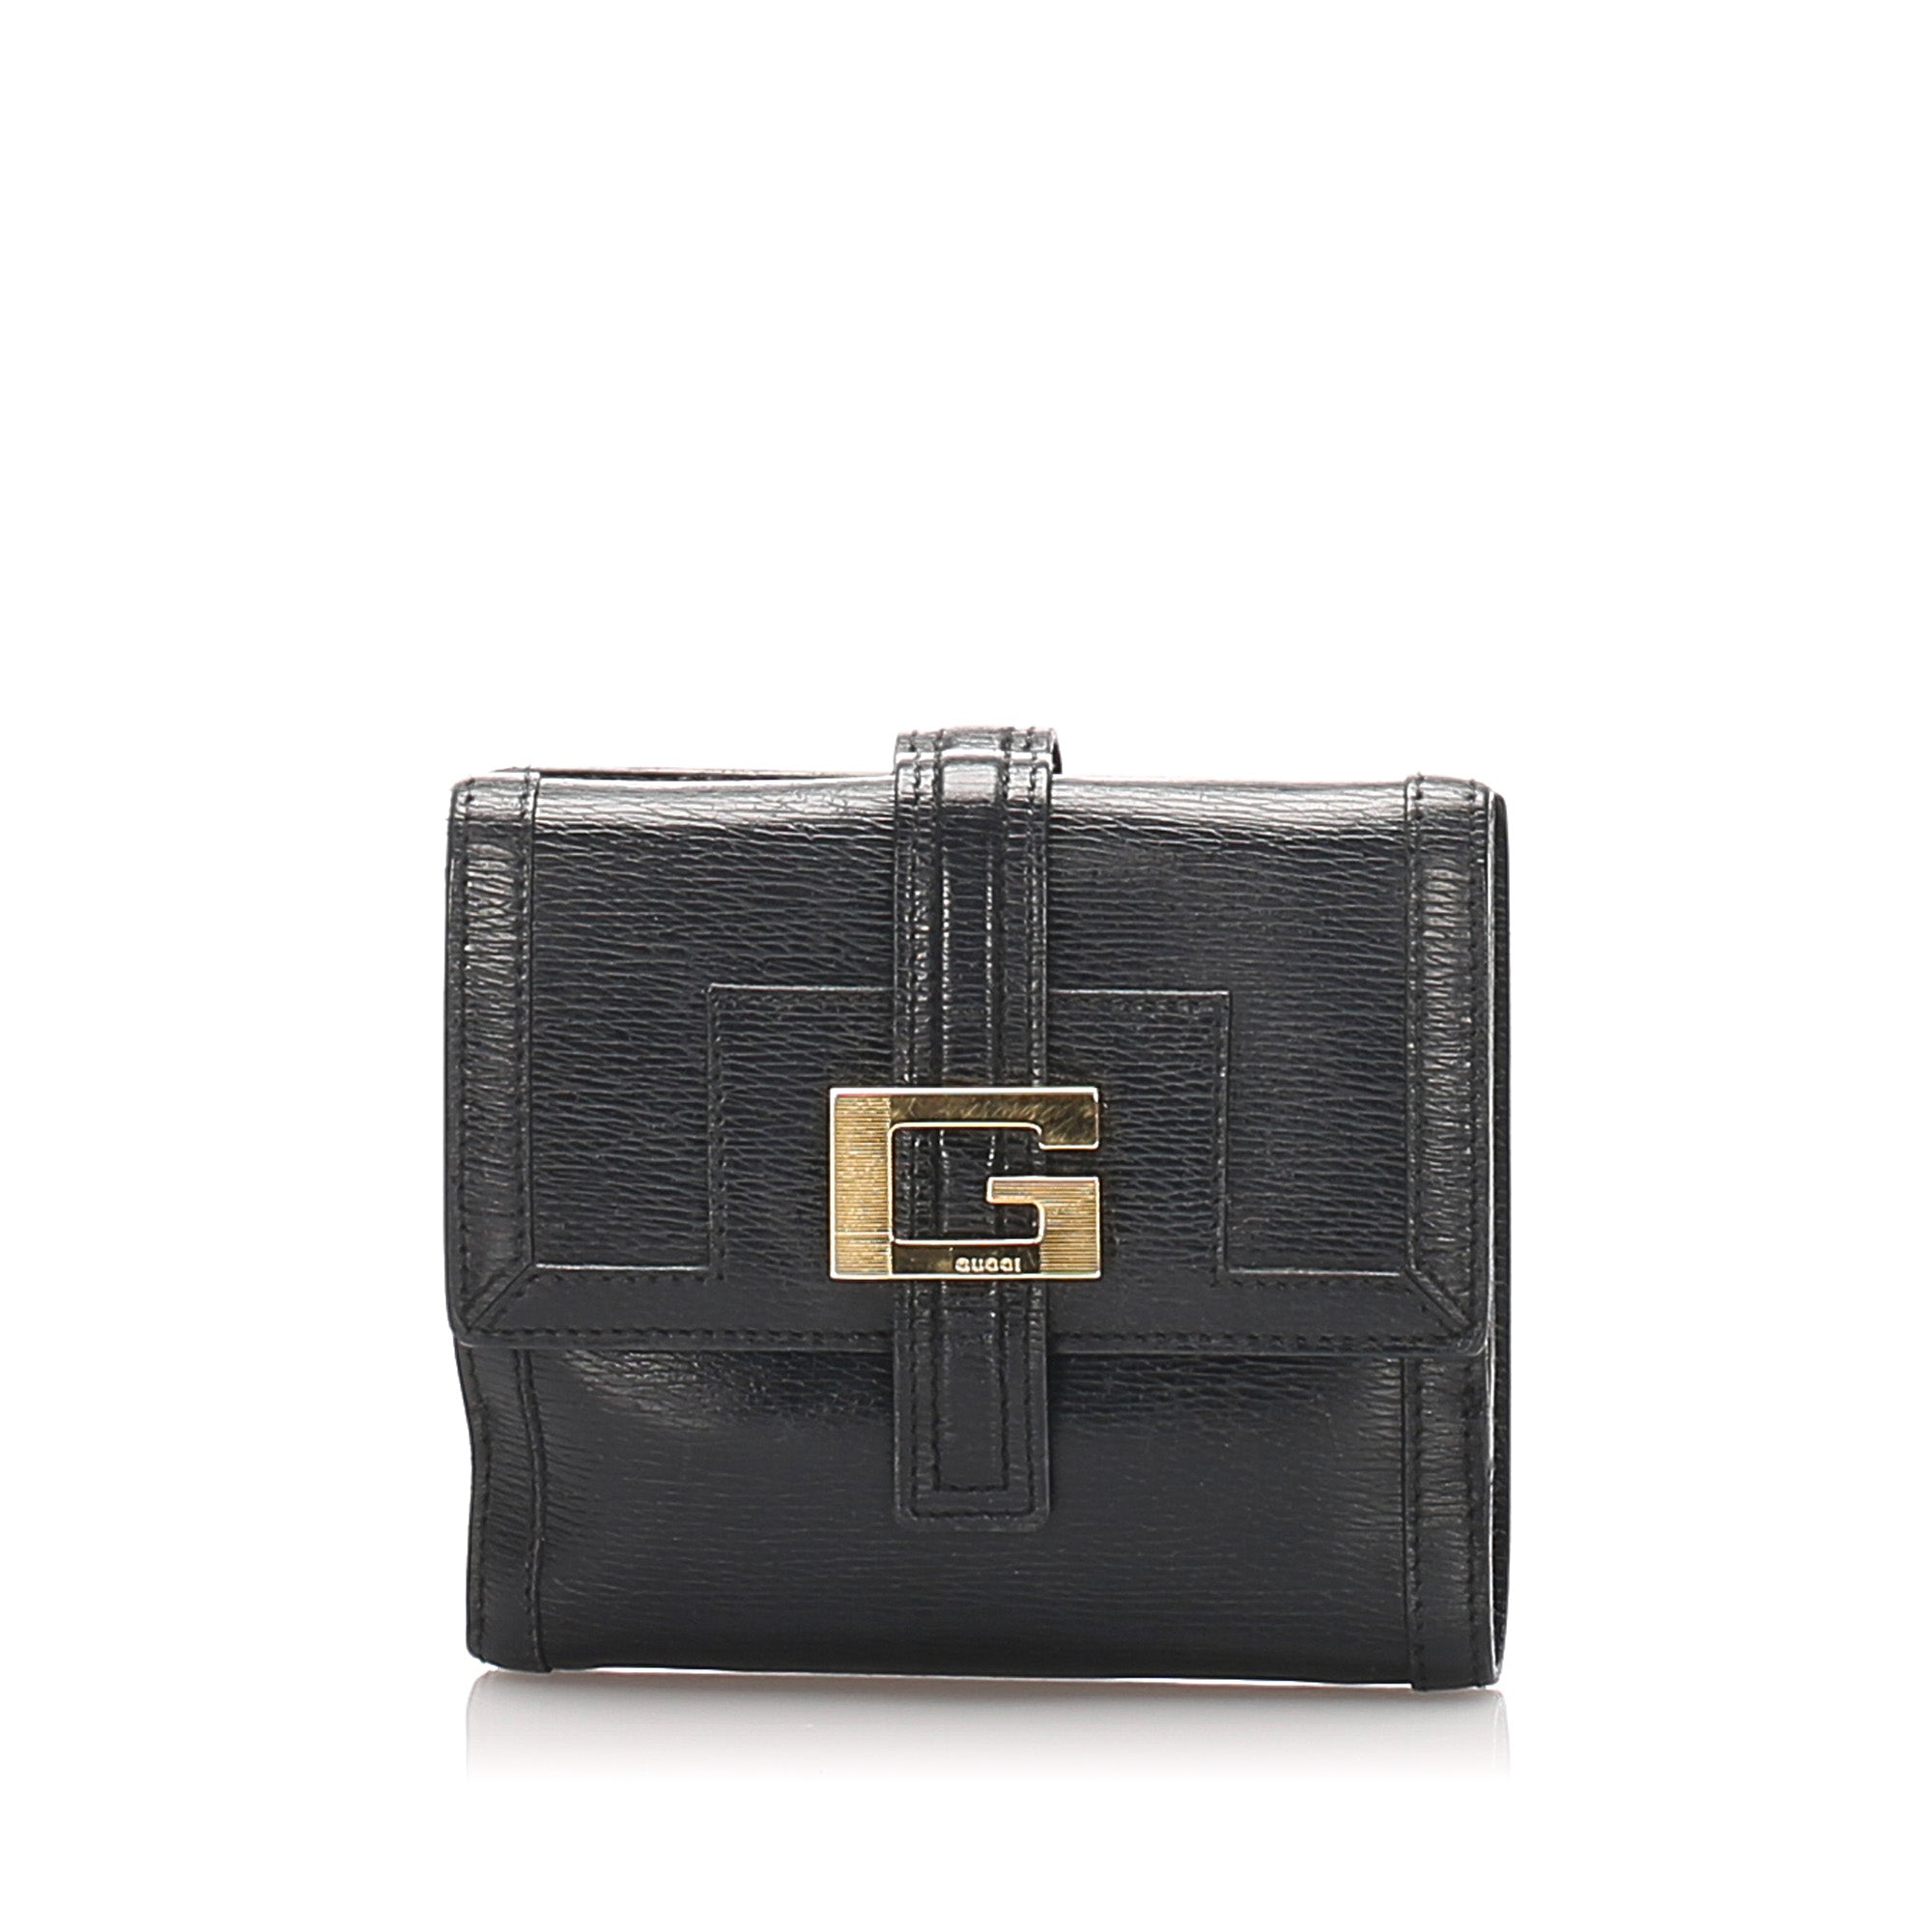 Gucci Black Leather Small Wallet